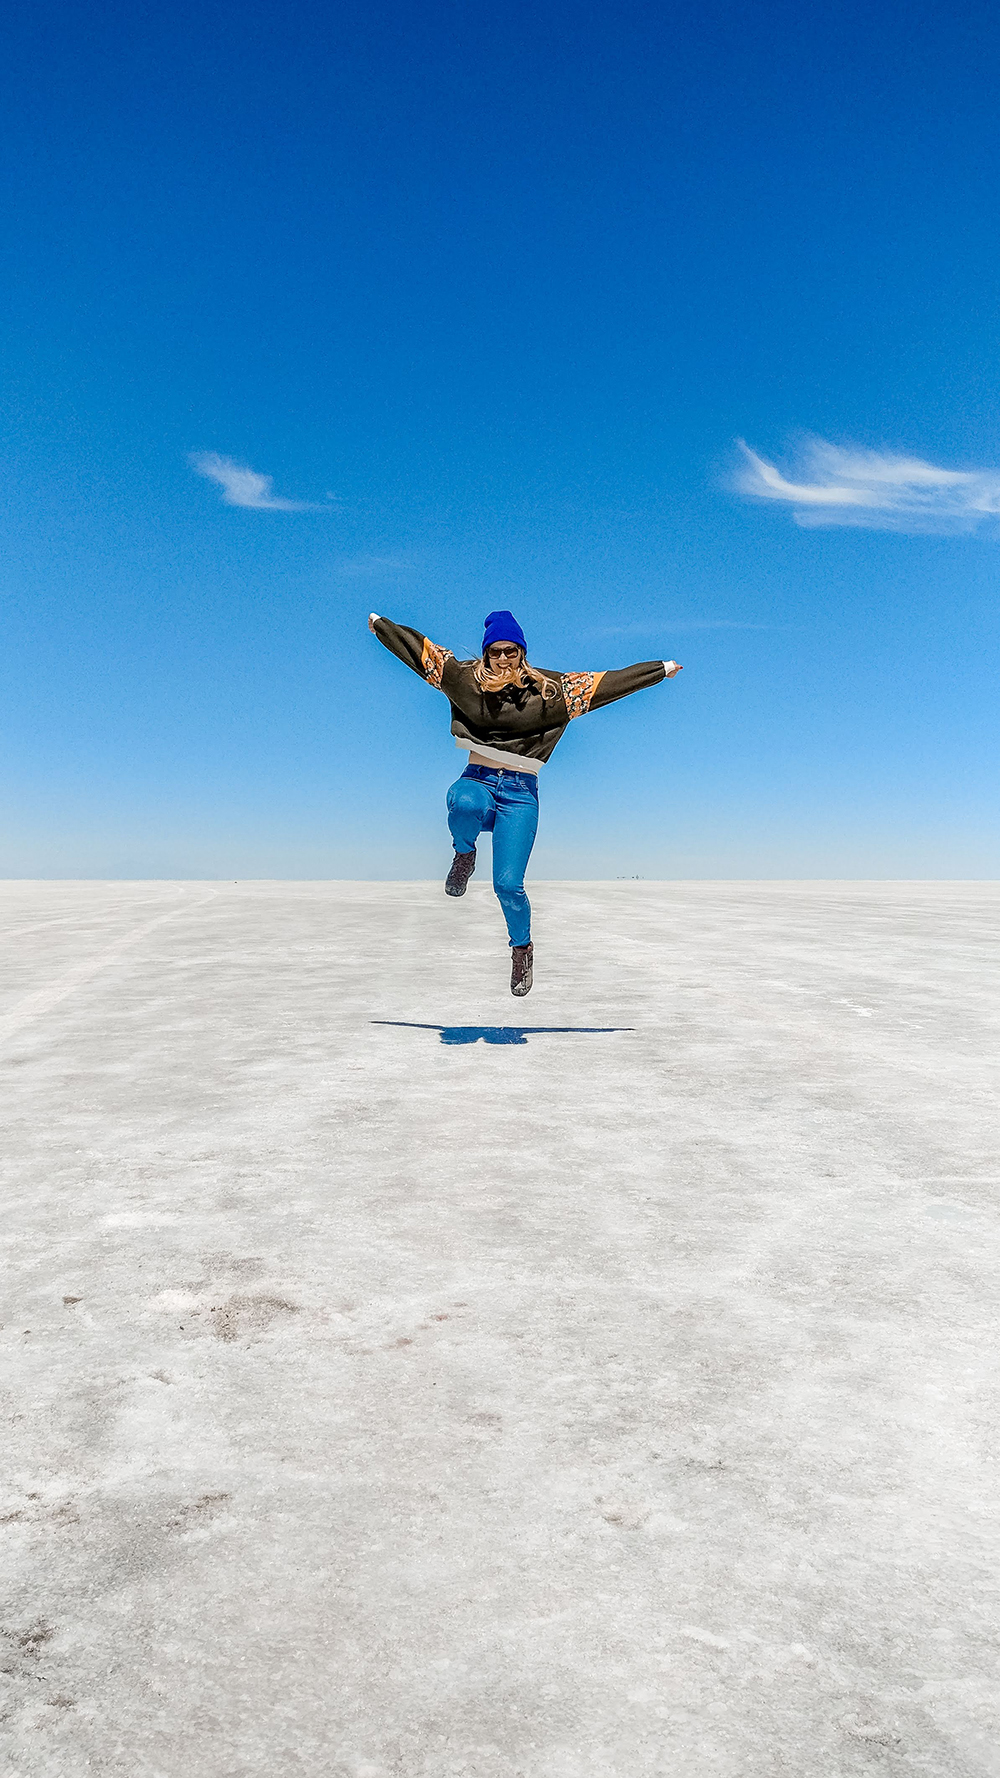 3-day Uyuni Salt Flats tour - Bolivia 2-week itinerary and travel guide | Aliz's Wonderland